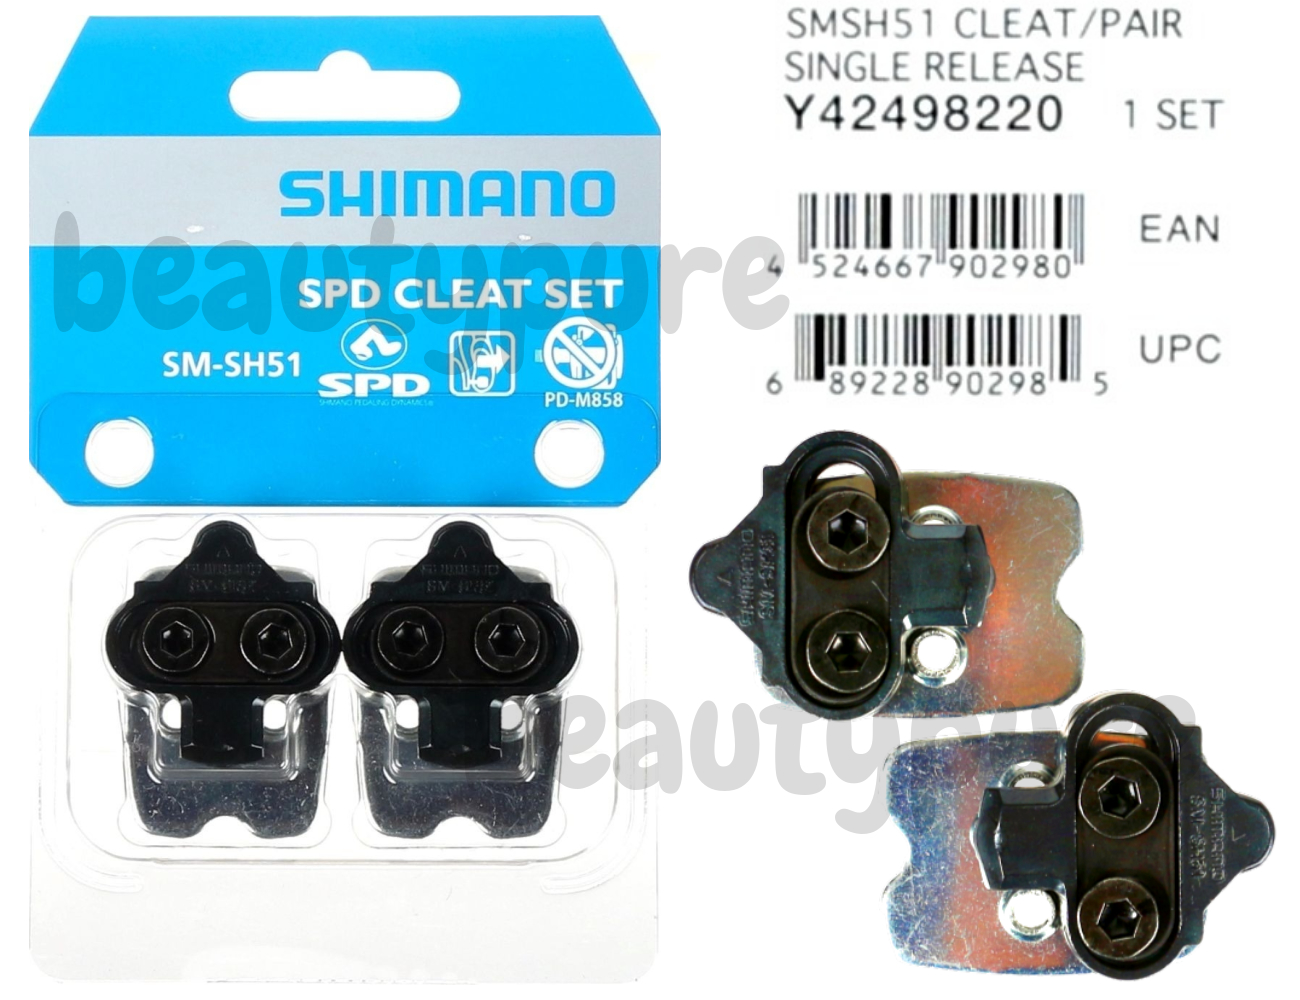 Y42498220 NIB 1Pair Shimano SM-SH51 SPD Pedal Cleat Set for MTB Mountain Bike